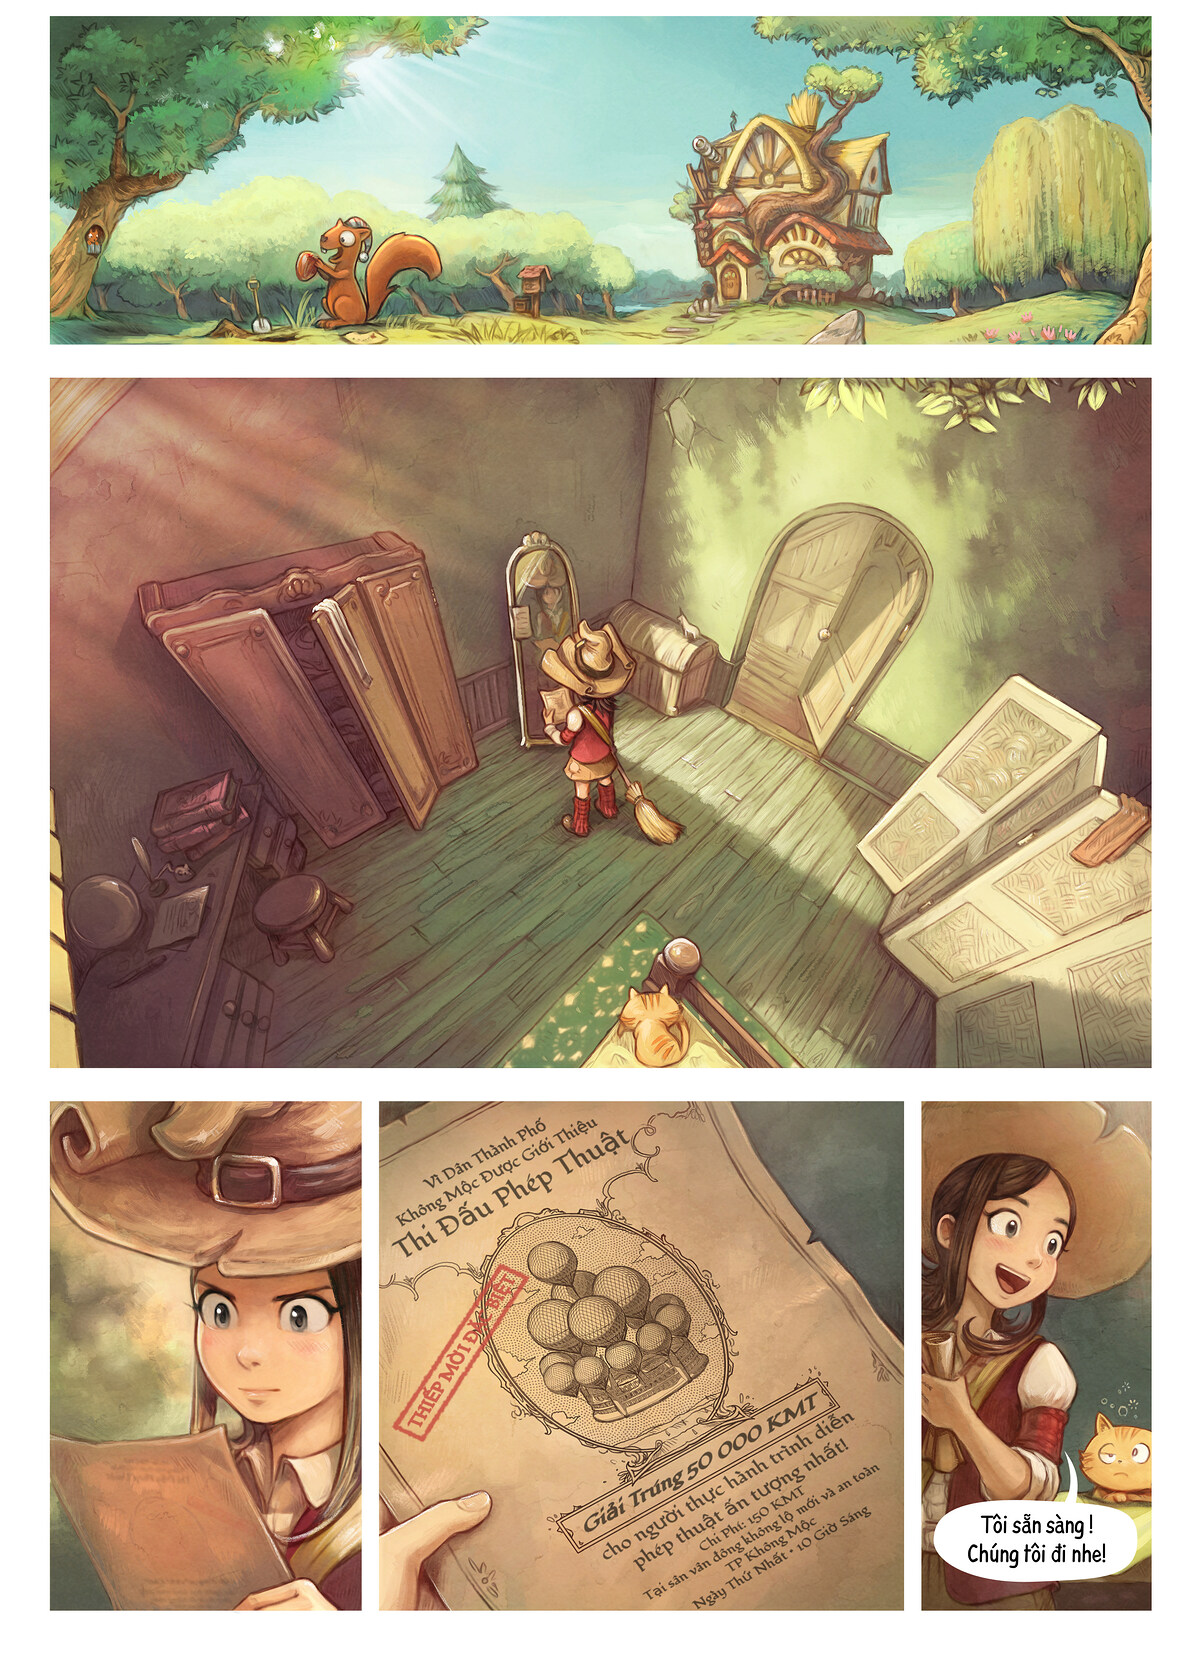 A webcomic page of Pepper&Carrot, Tập 21 [vi], trang 1